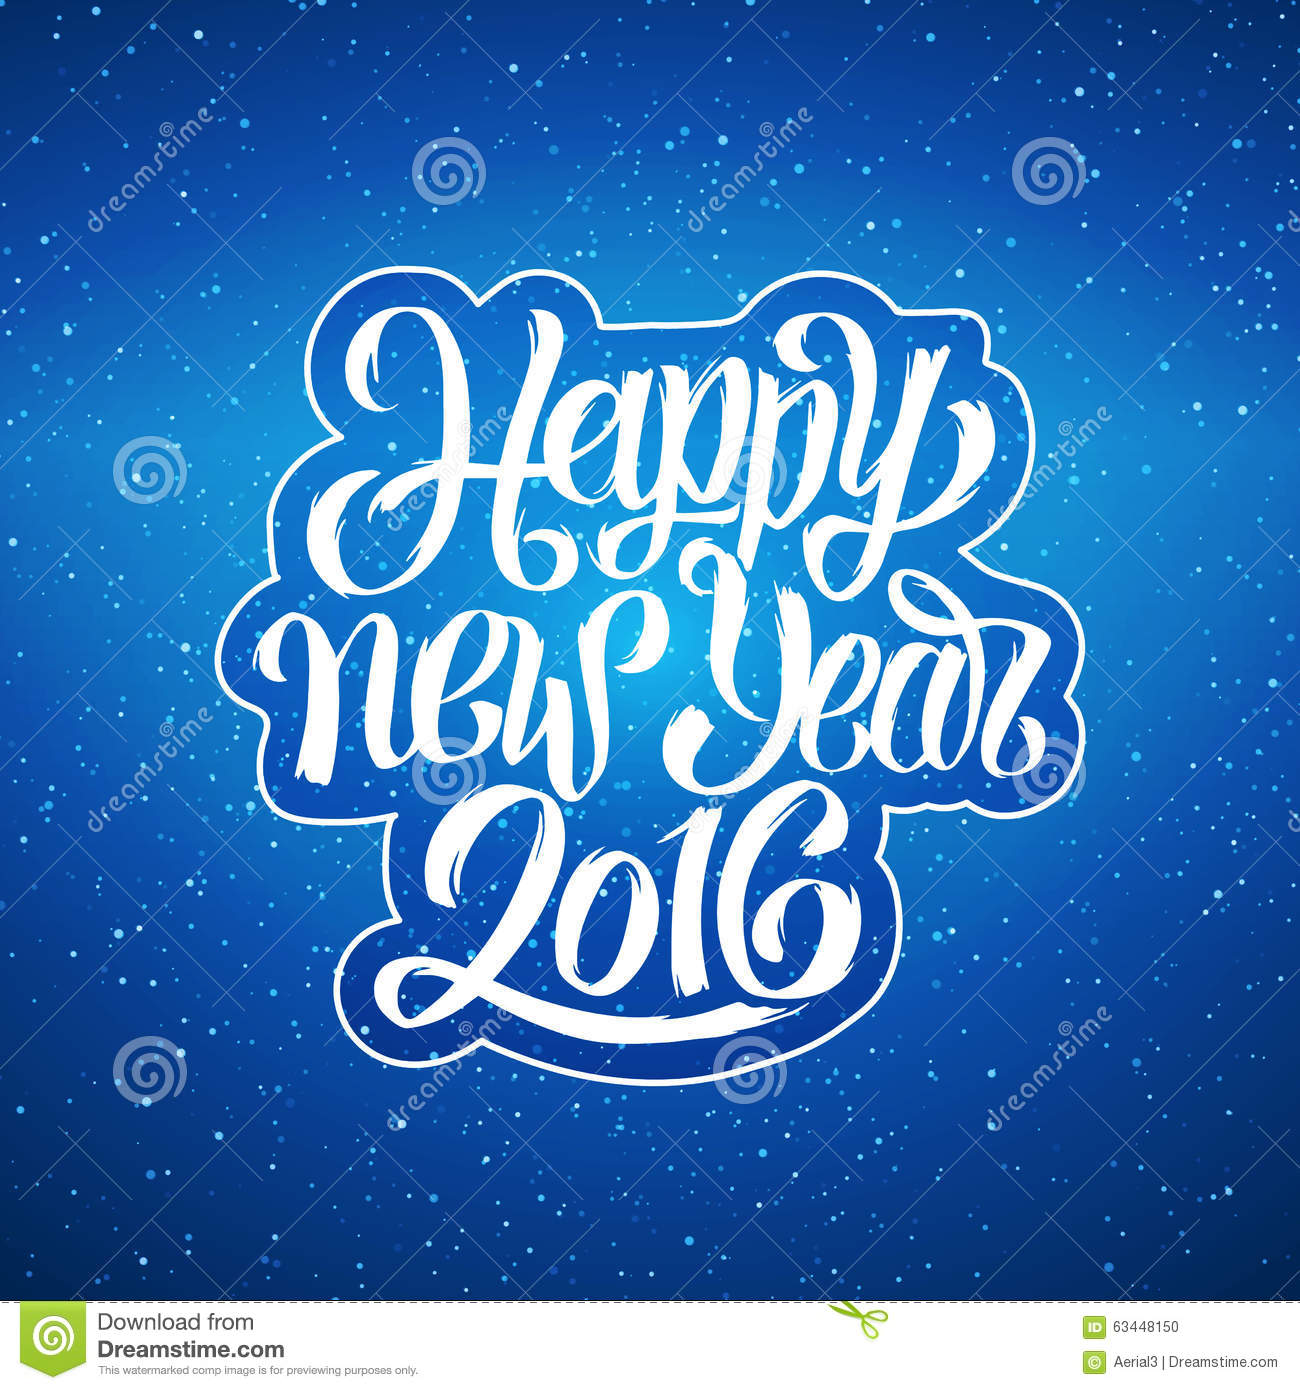 happy new year 2016 vector greeting card stock vector - image